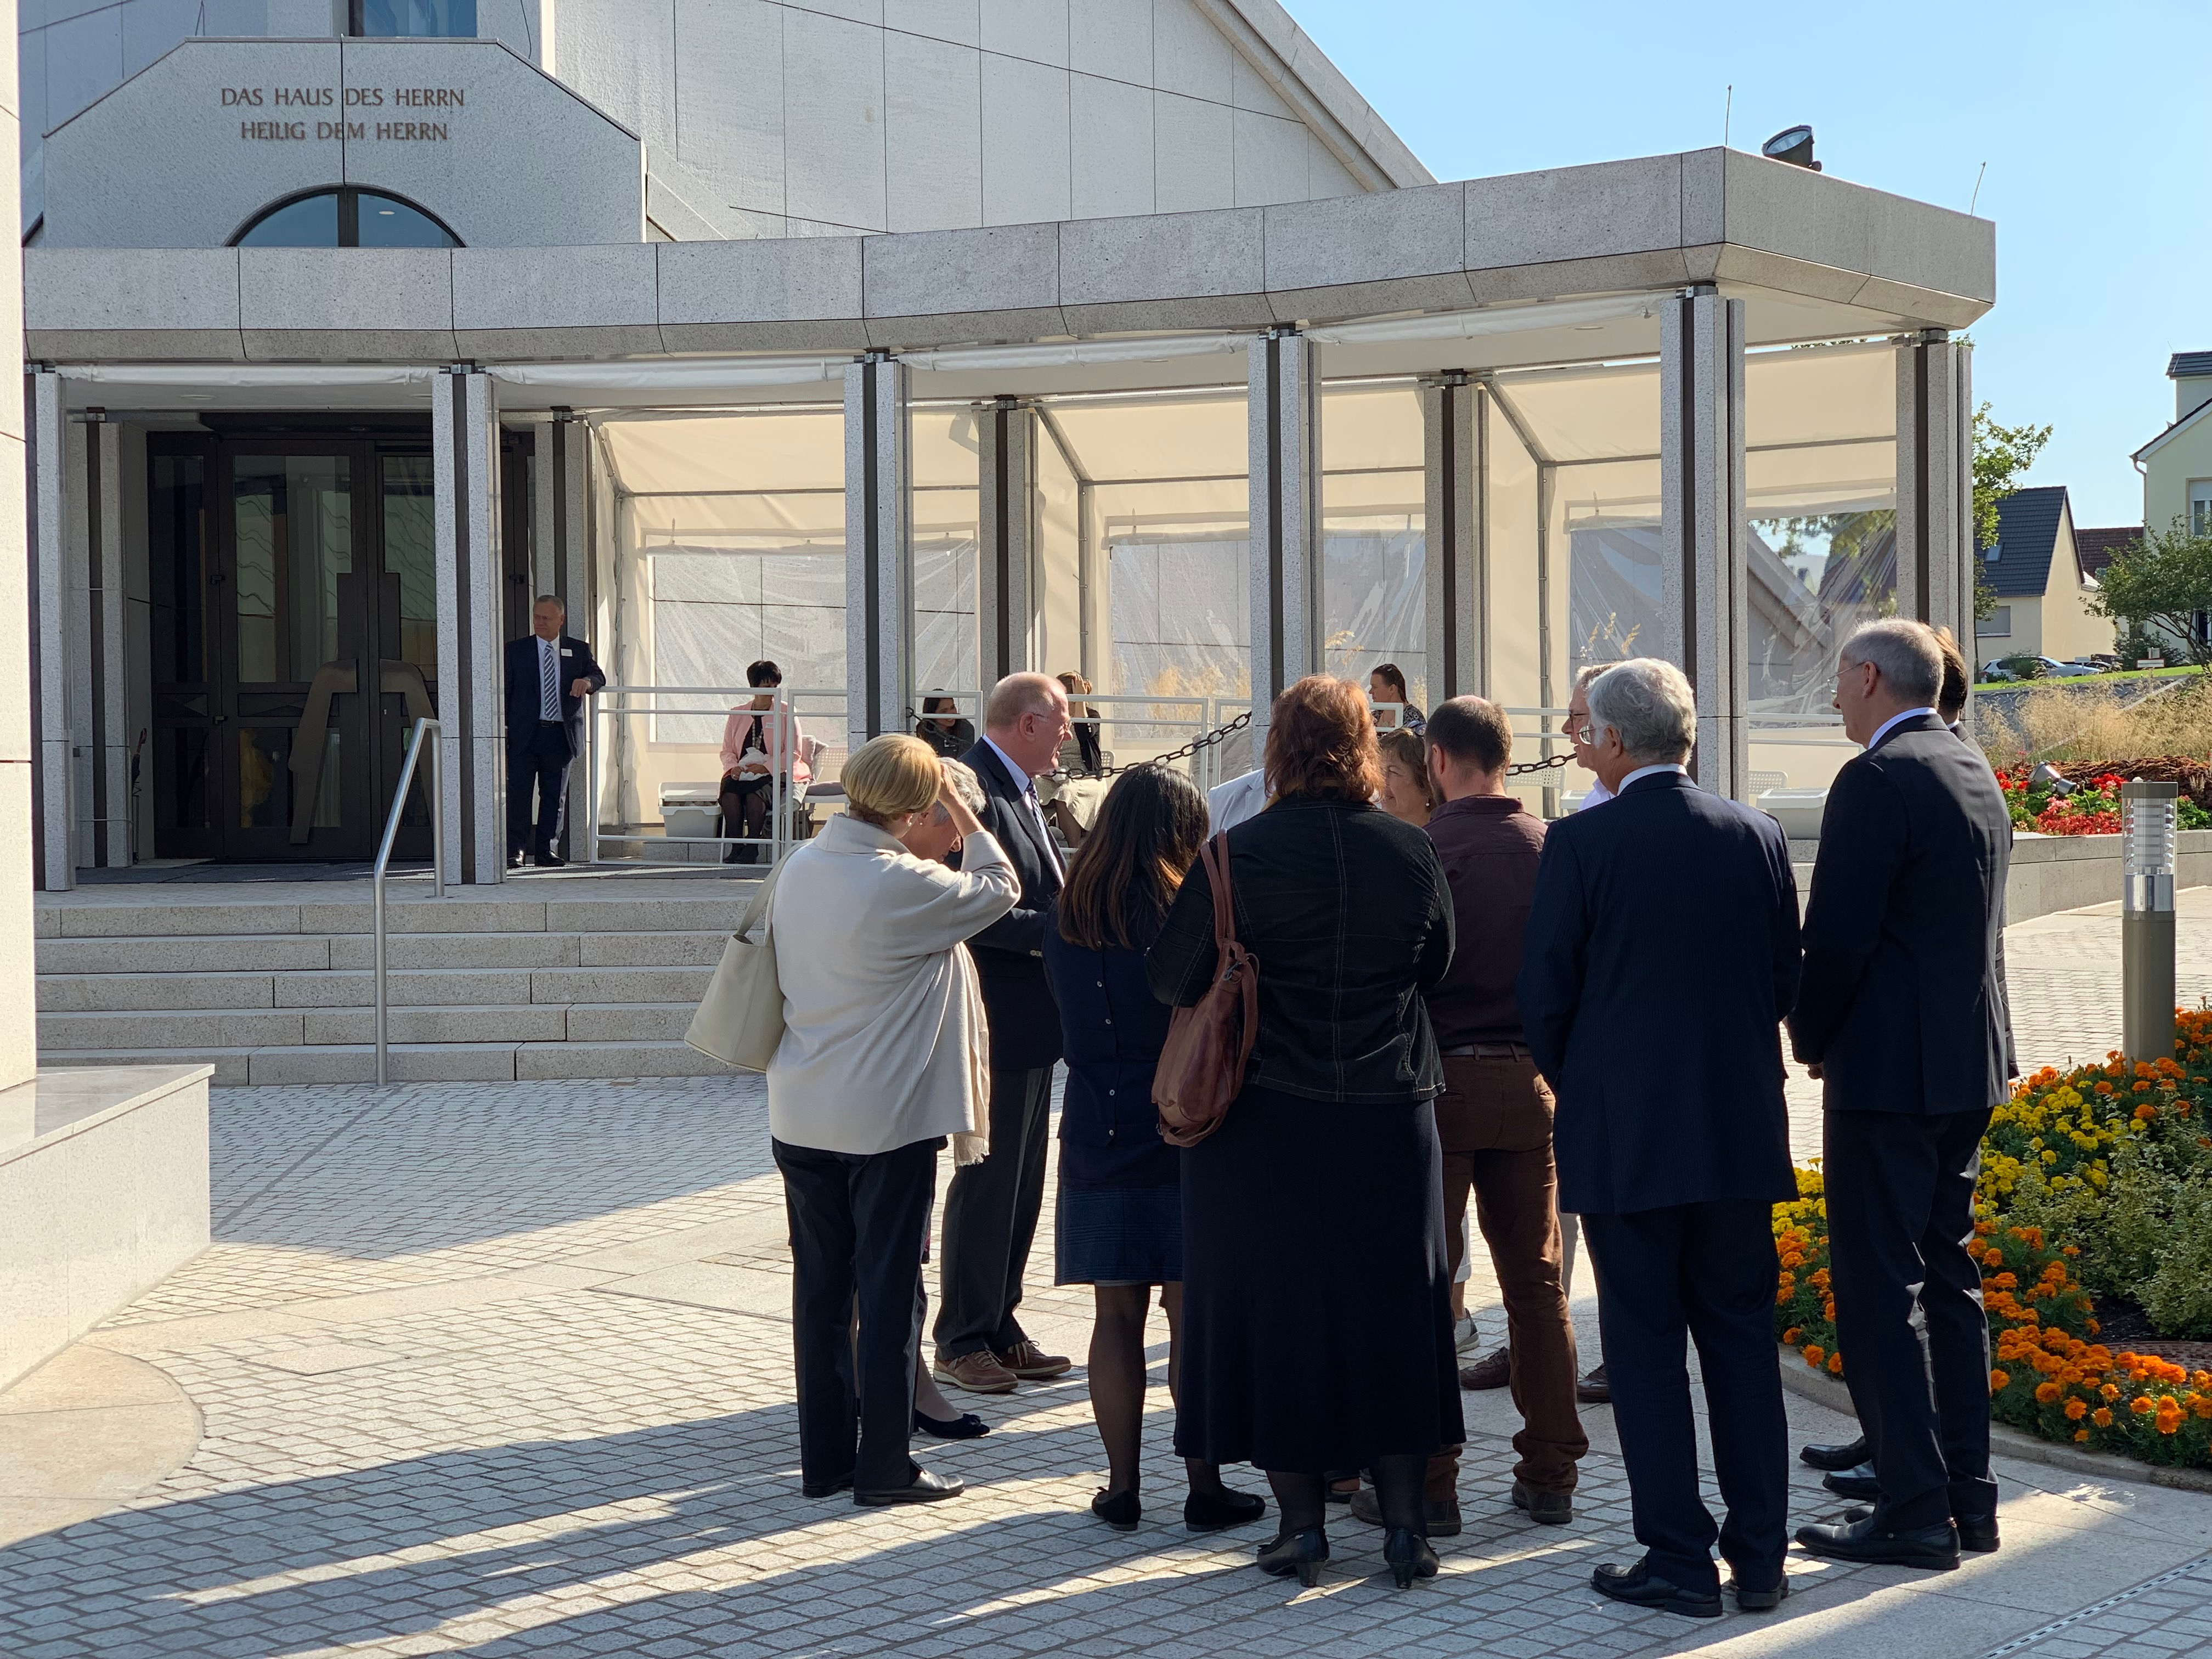 Media tour the Frankfurt Germany Temple on Sept. 9, 2019, in conjunction with the beginning of the public open house before the temple is rededicated